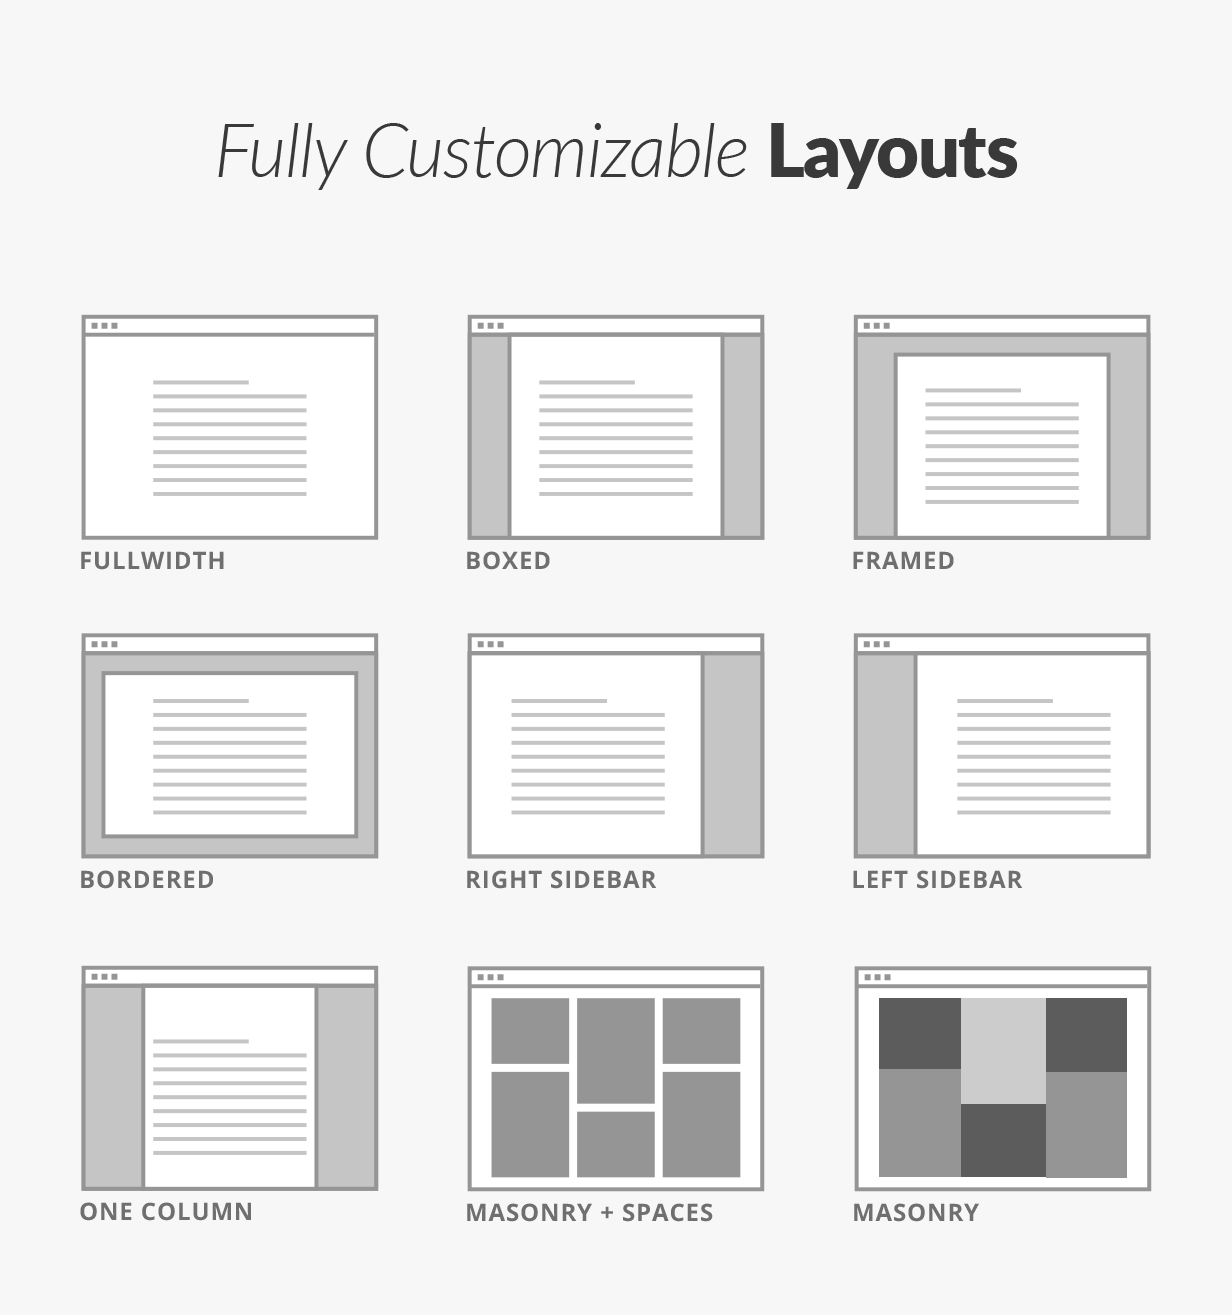 Customizable Layouts